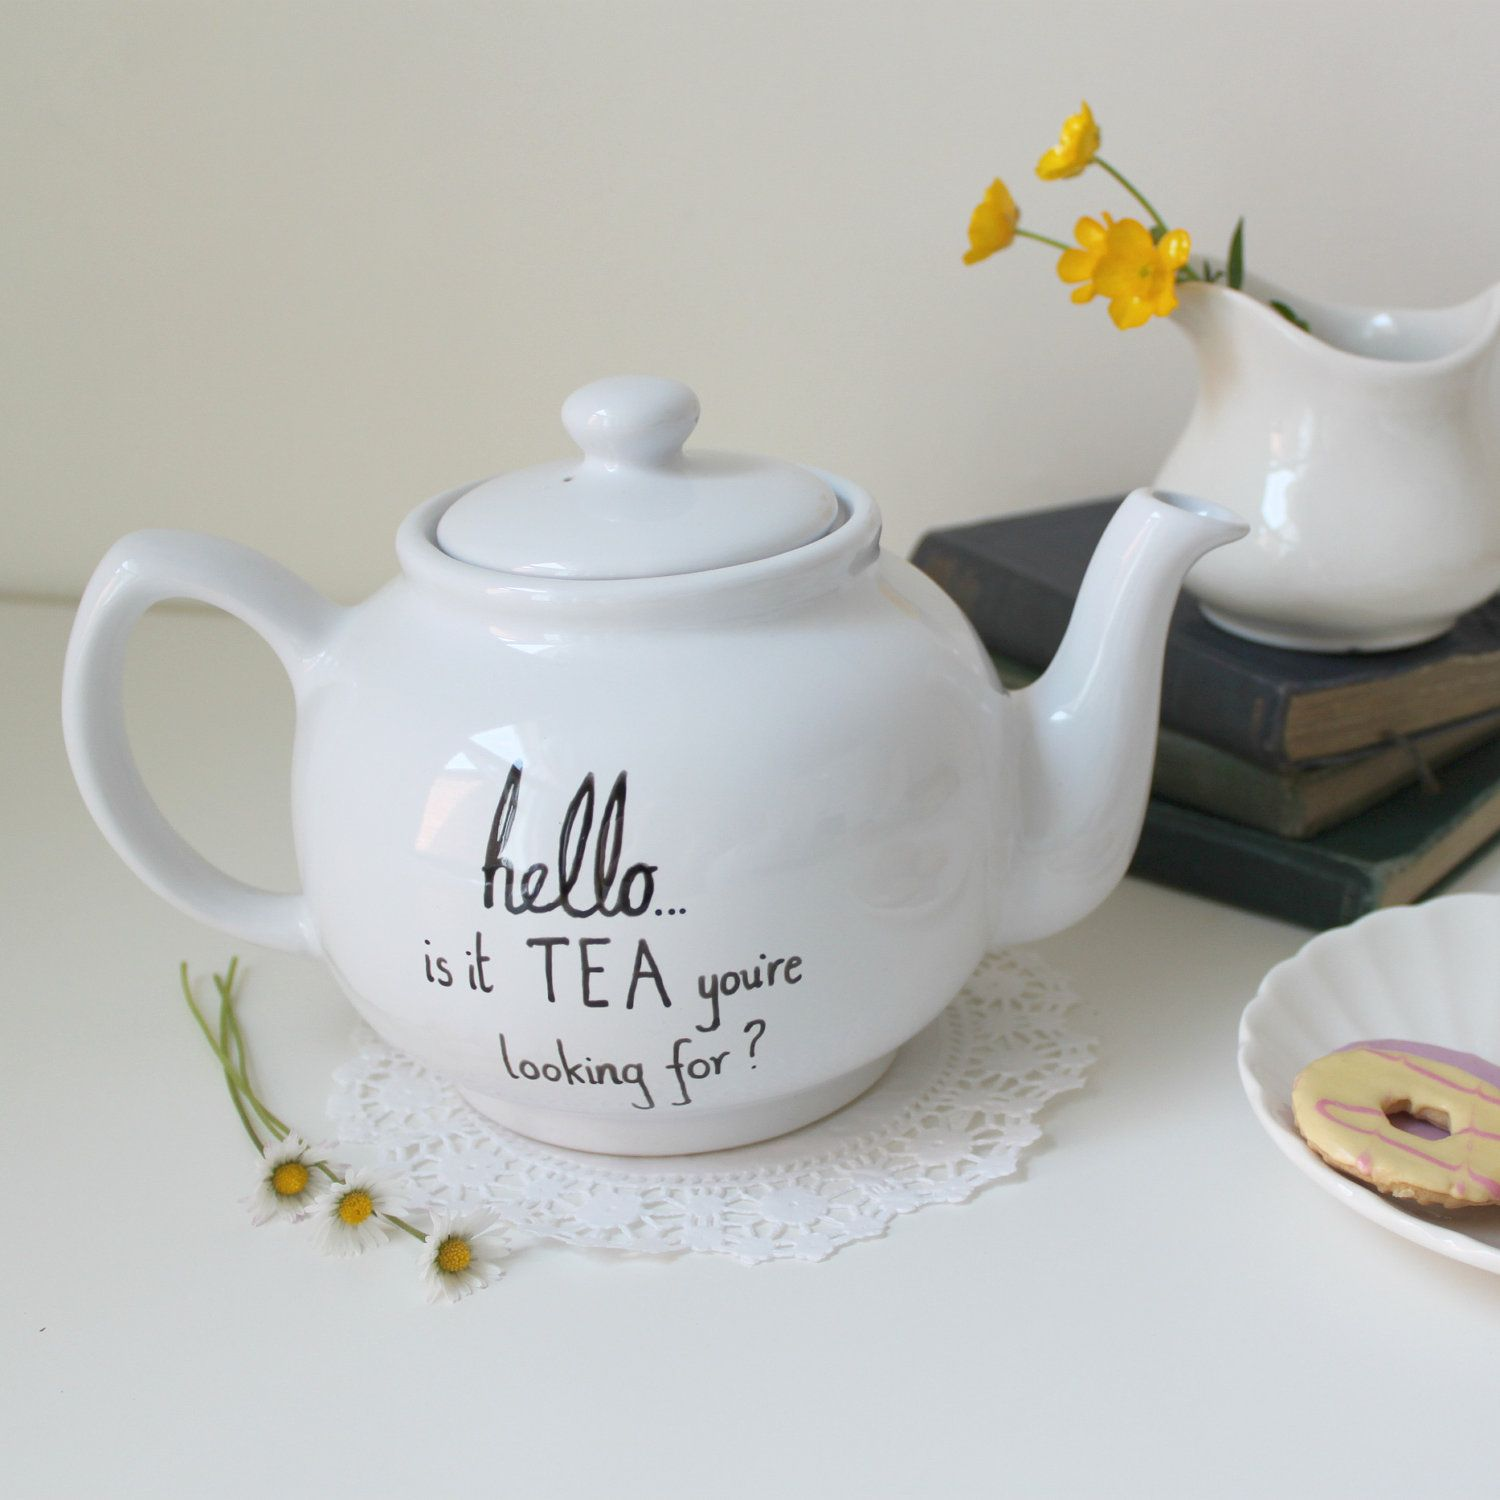 Looking For Teapots Lionel Richie Teapot Hand Drawn By Mr Teacup Hello Is It